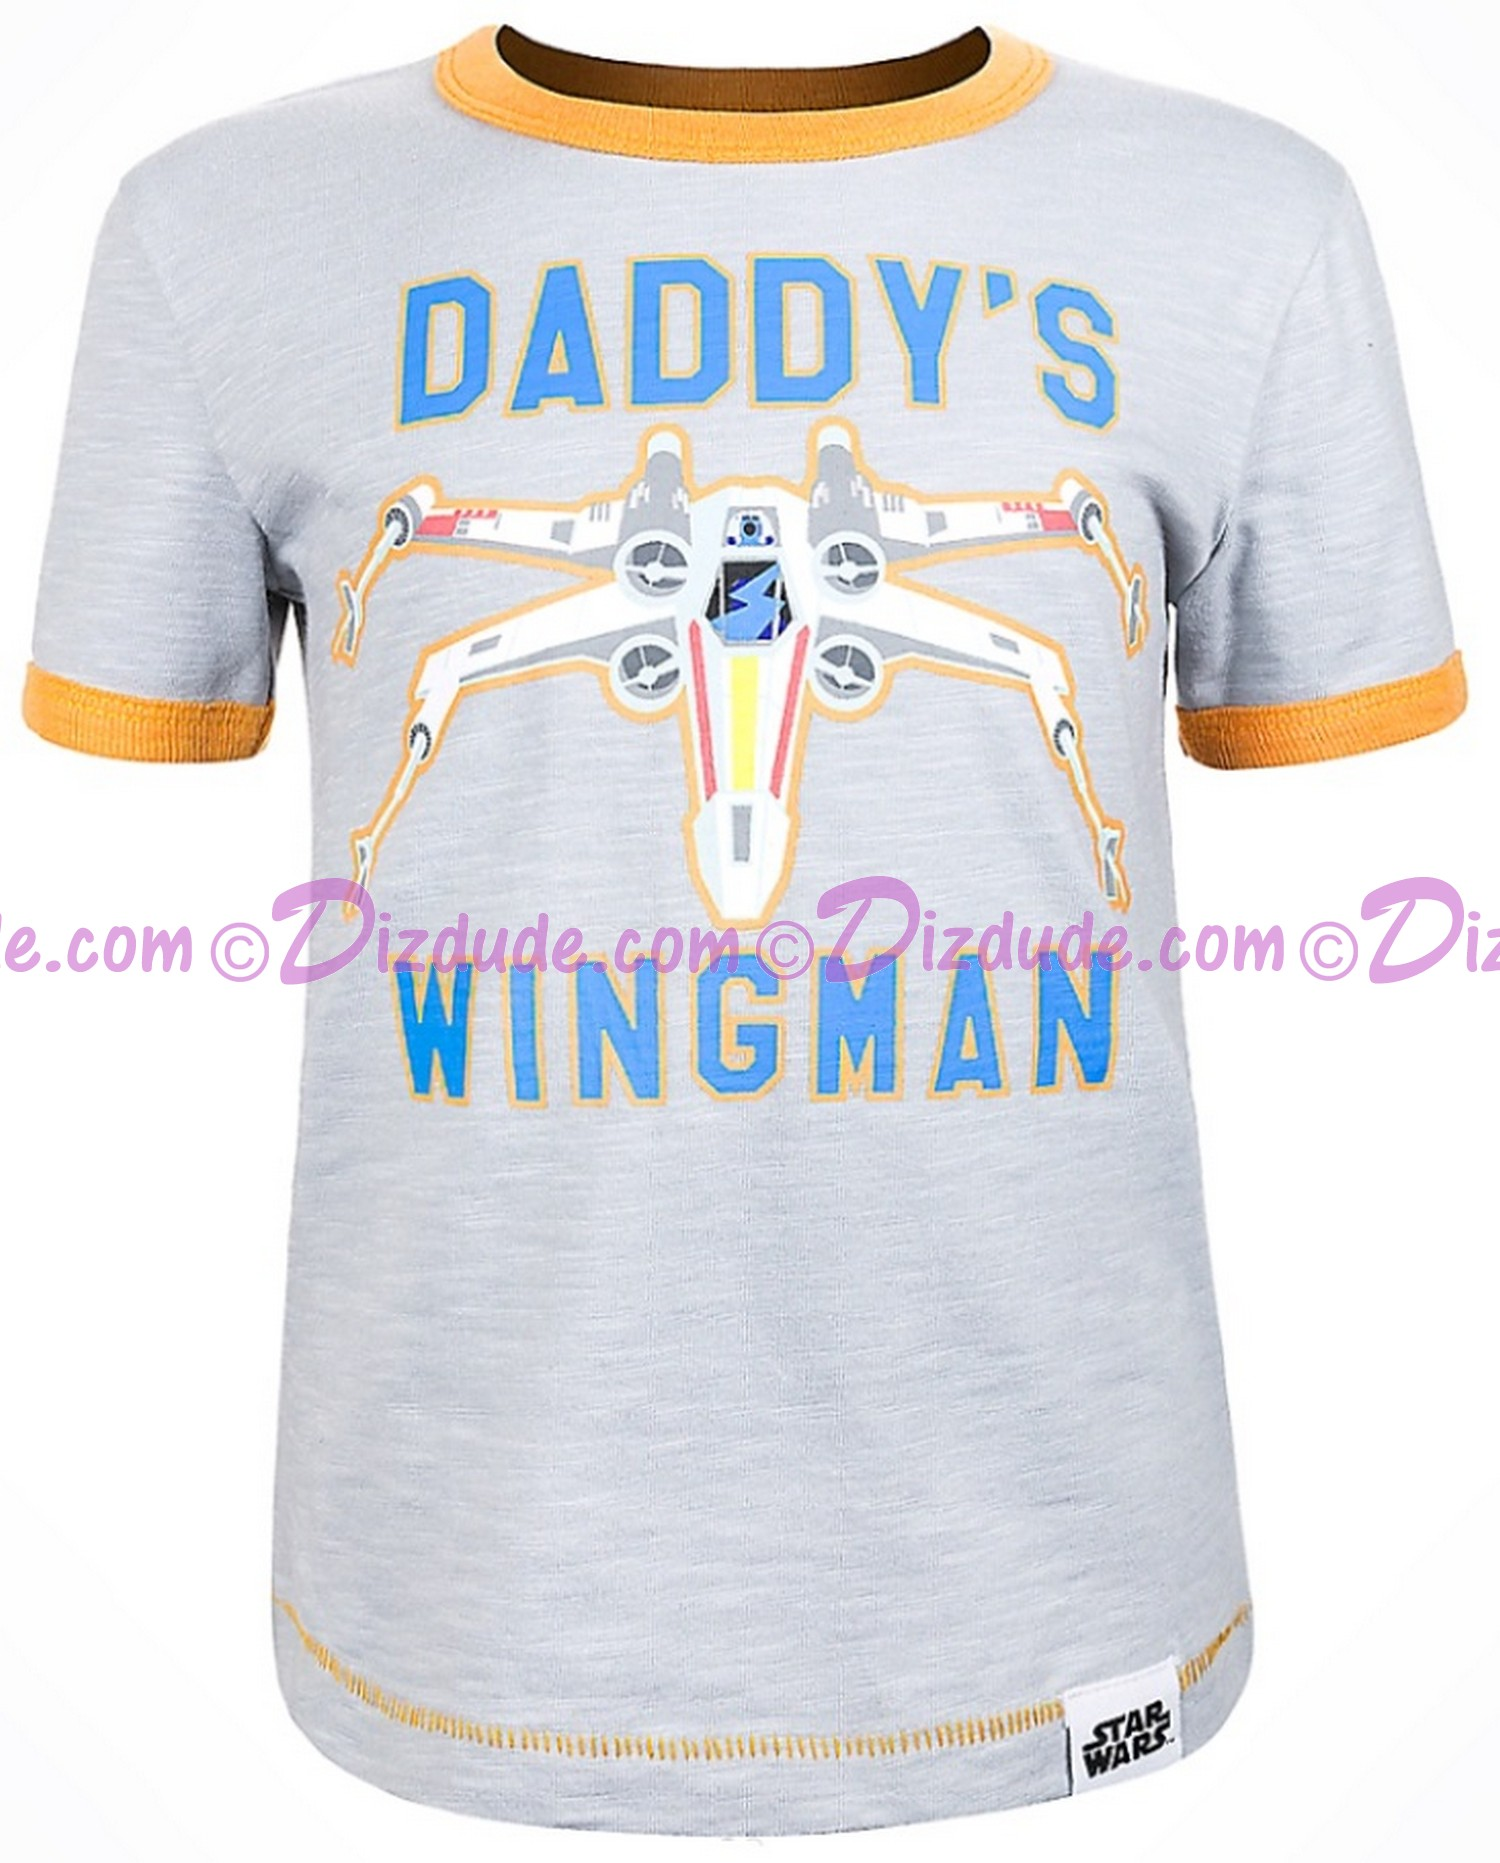 (SOLD OUT) Disney Star Wars Episode VIII: The Last Jedi - Daddy's Wingman Toddler Ringer T-Shirt (Tshirt, T shirt or Tee)